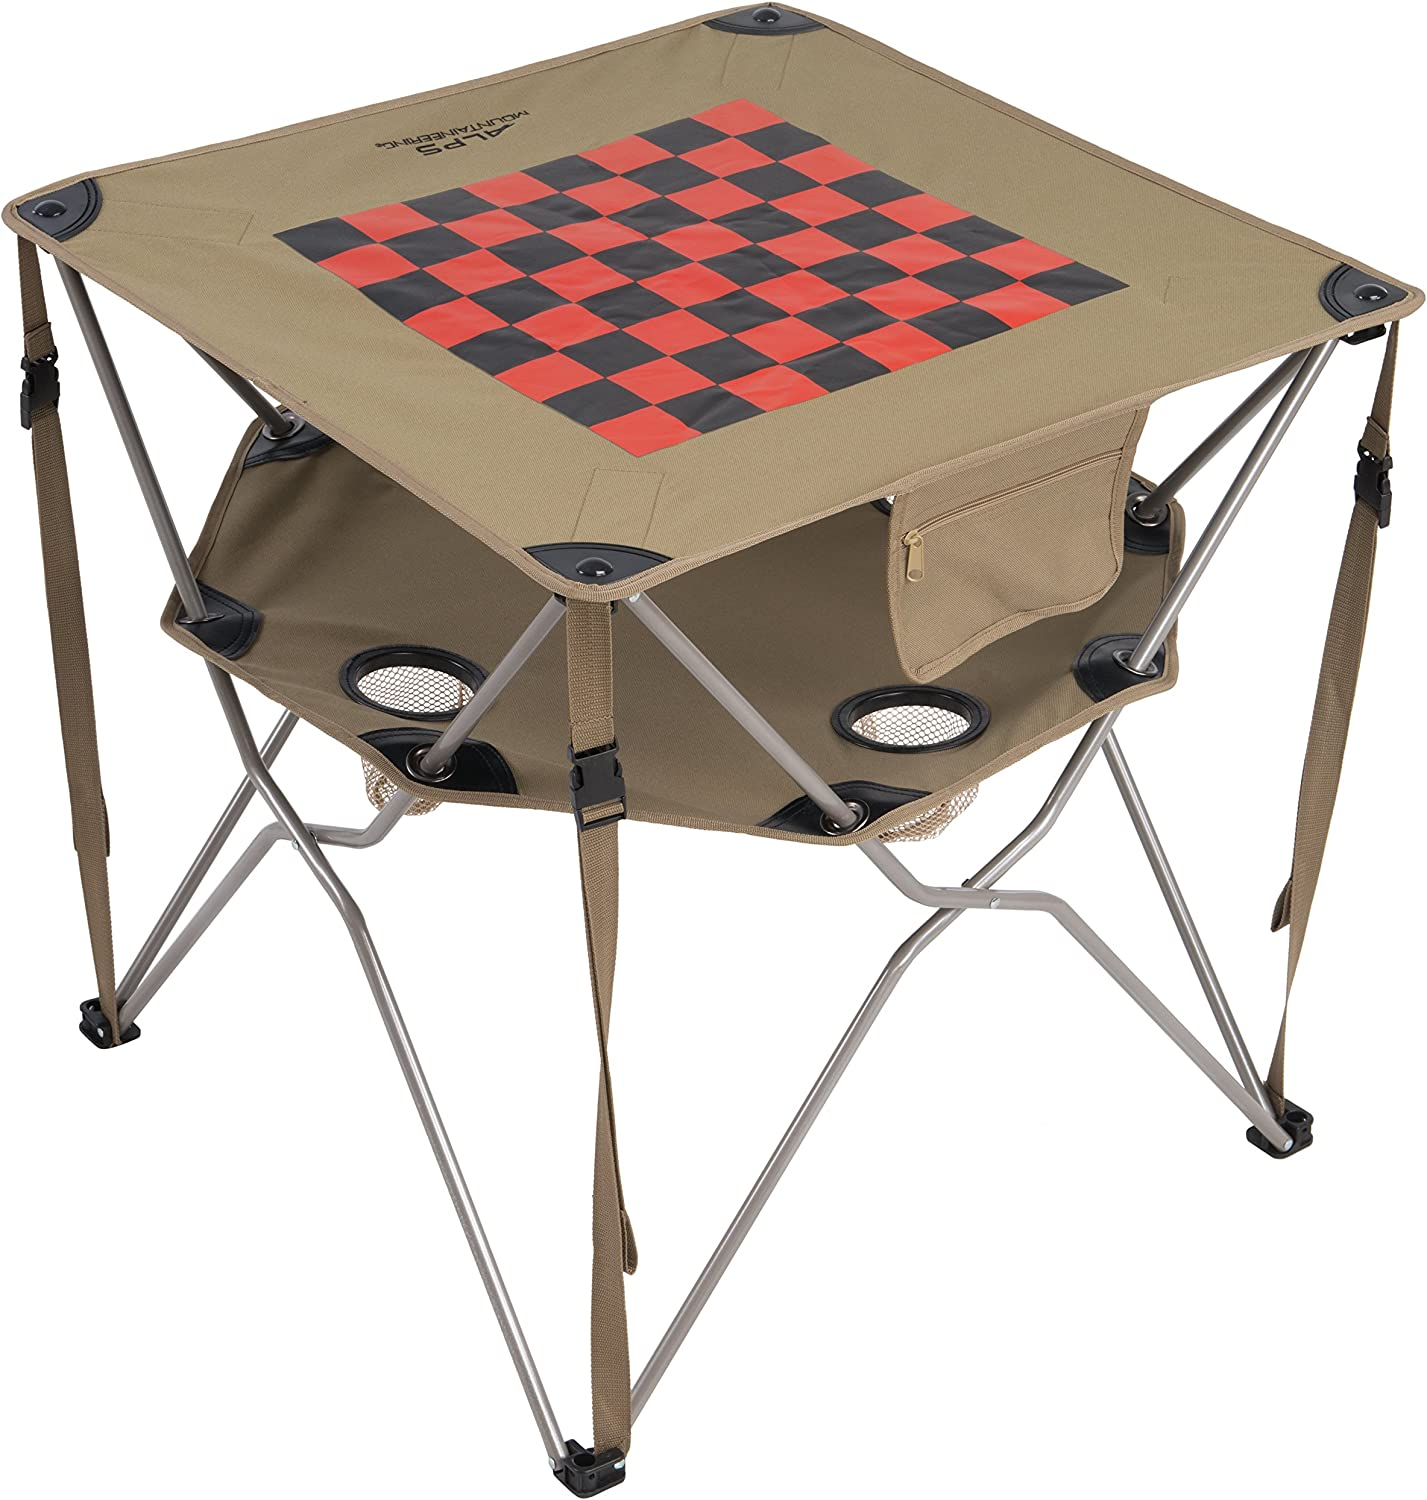 ALPS Mountaineering Eclipse Camping Table